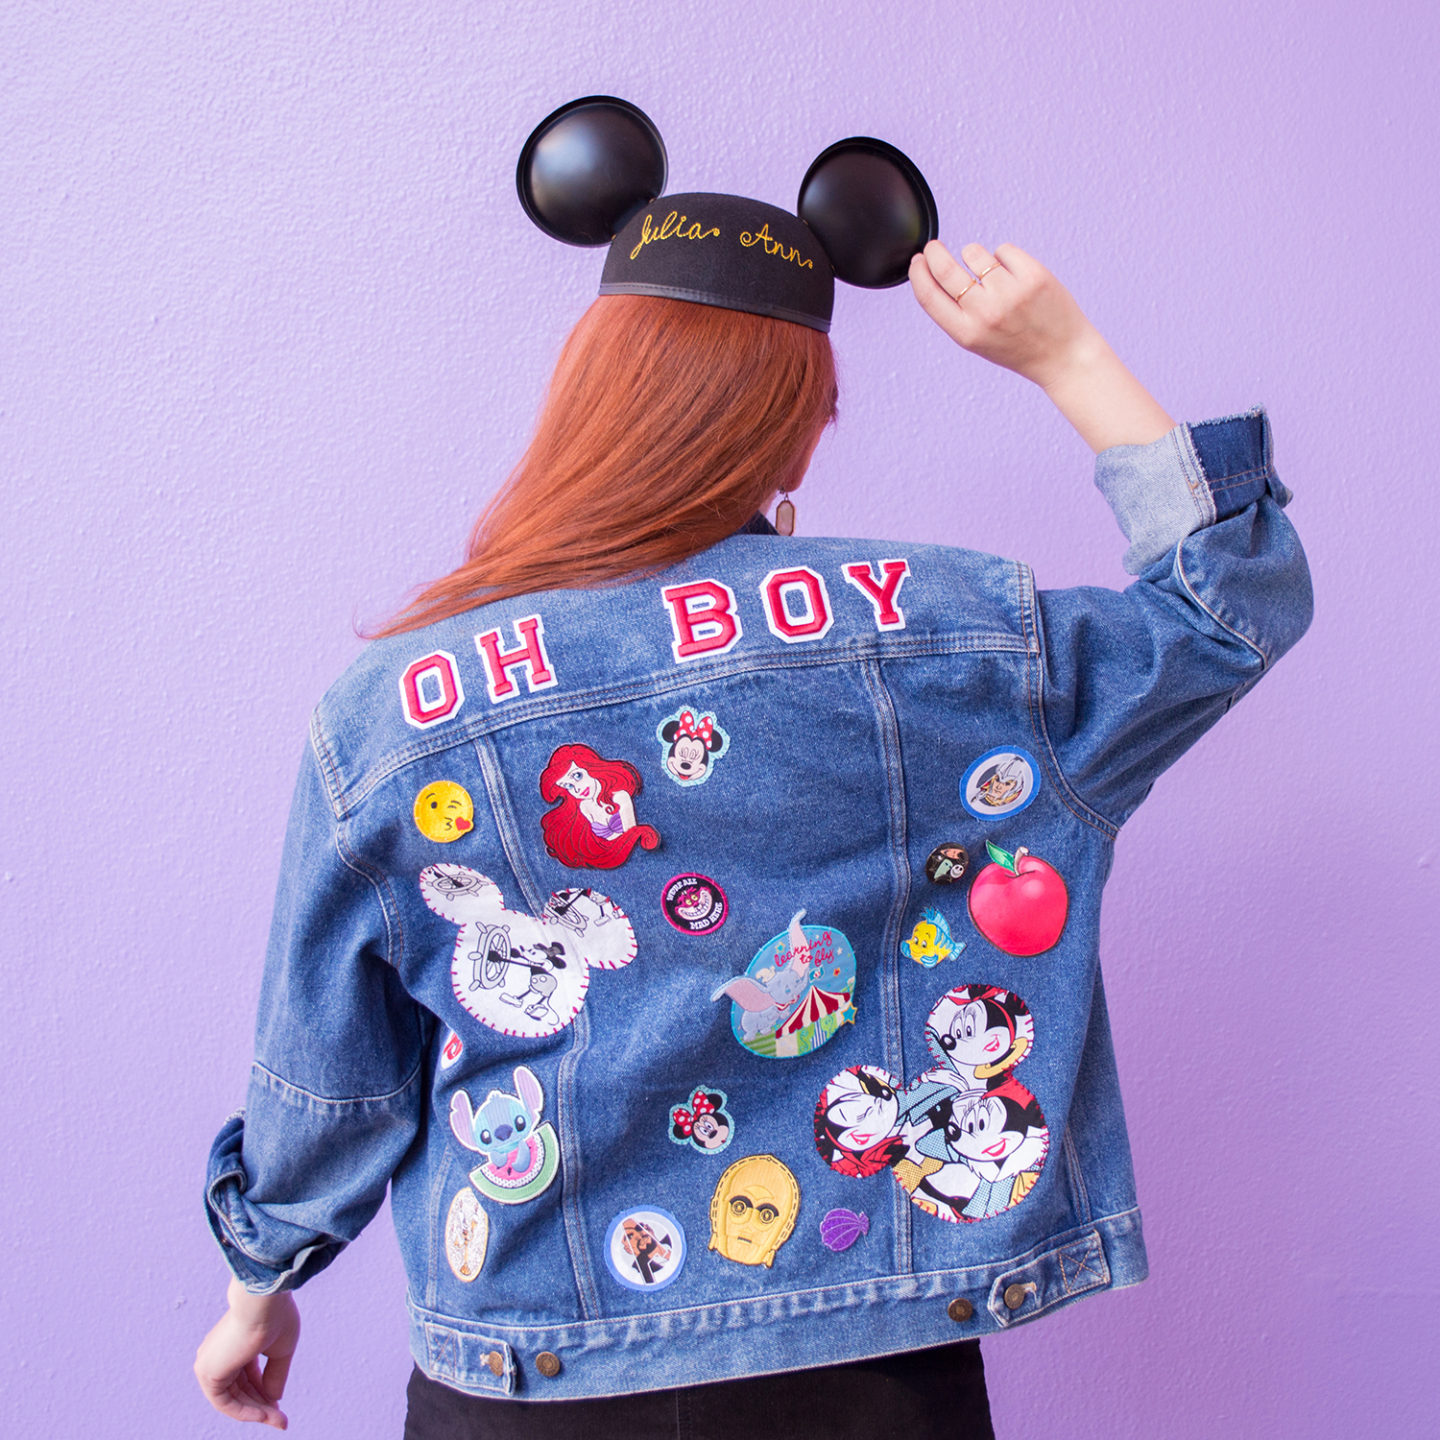 DIY Disney Denim Jacket with Homemade Patches